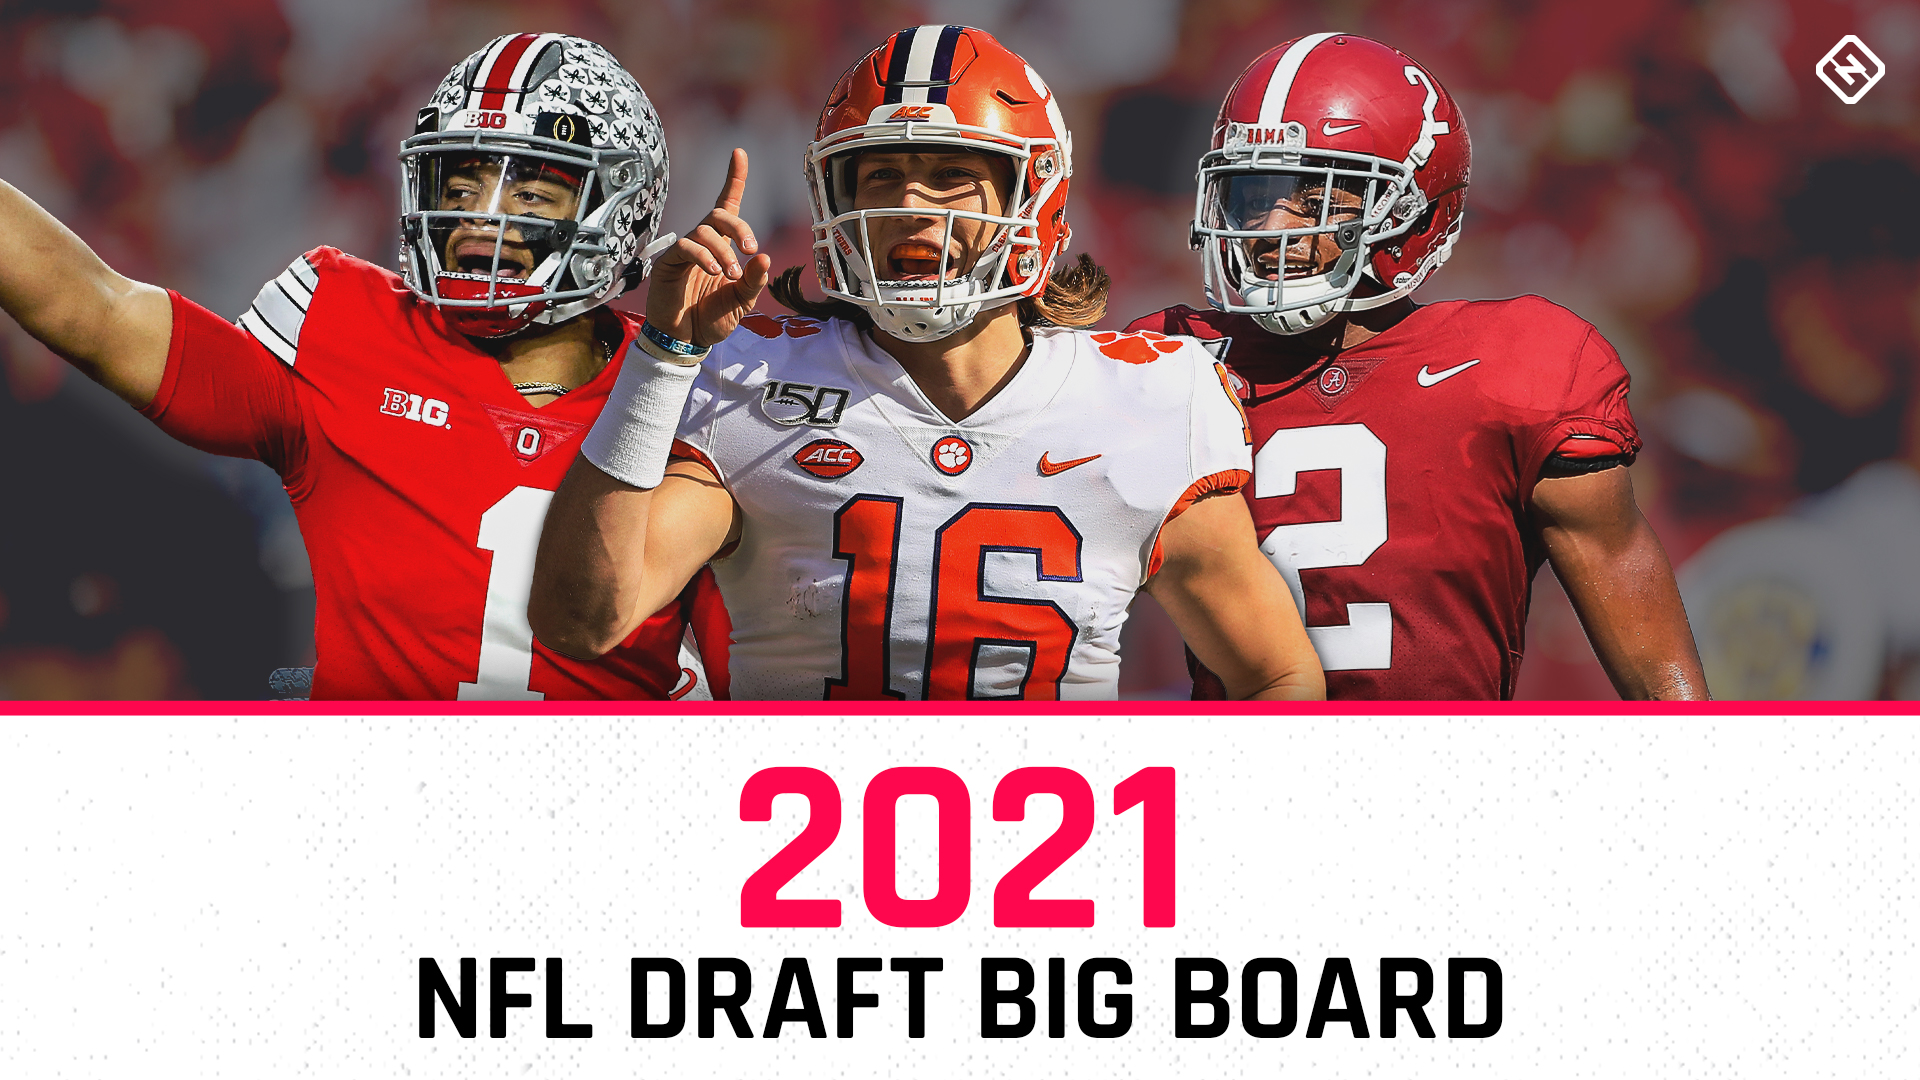 nfl draft prospects 2021 big board of top 50 players